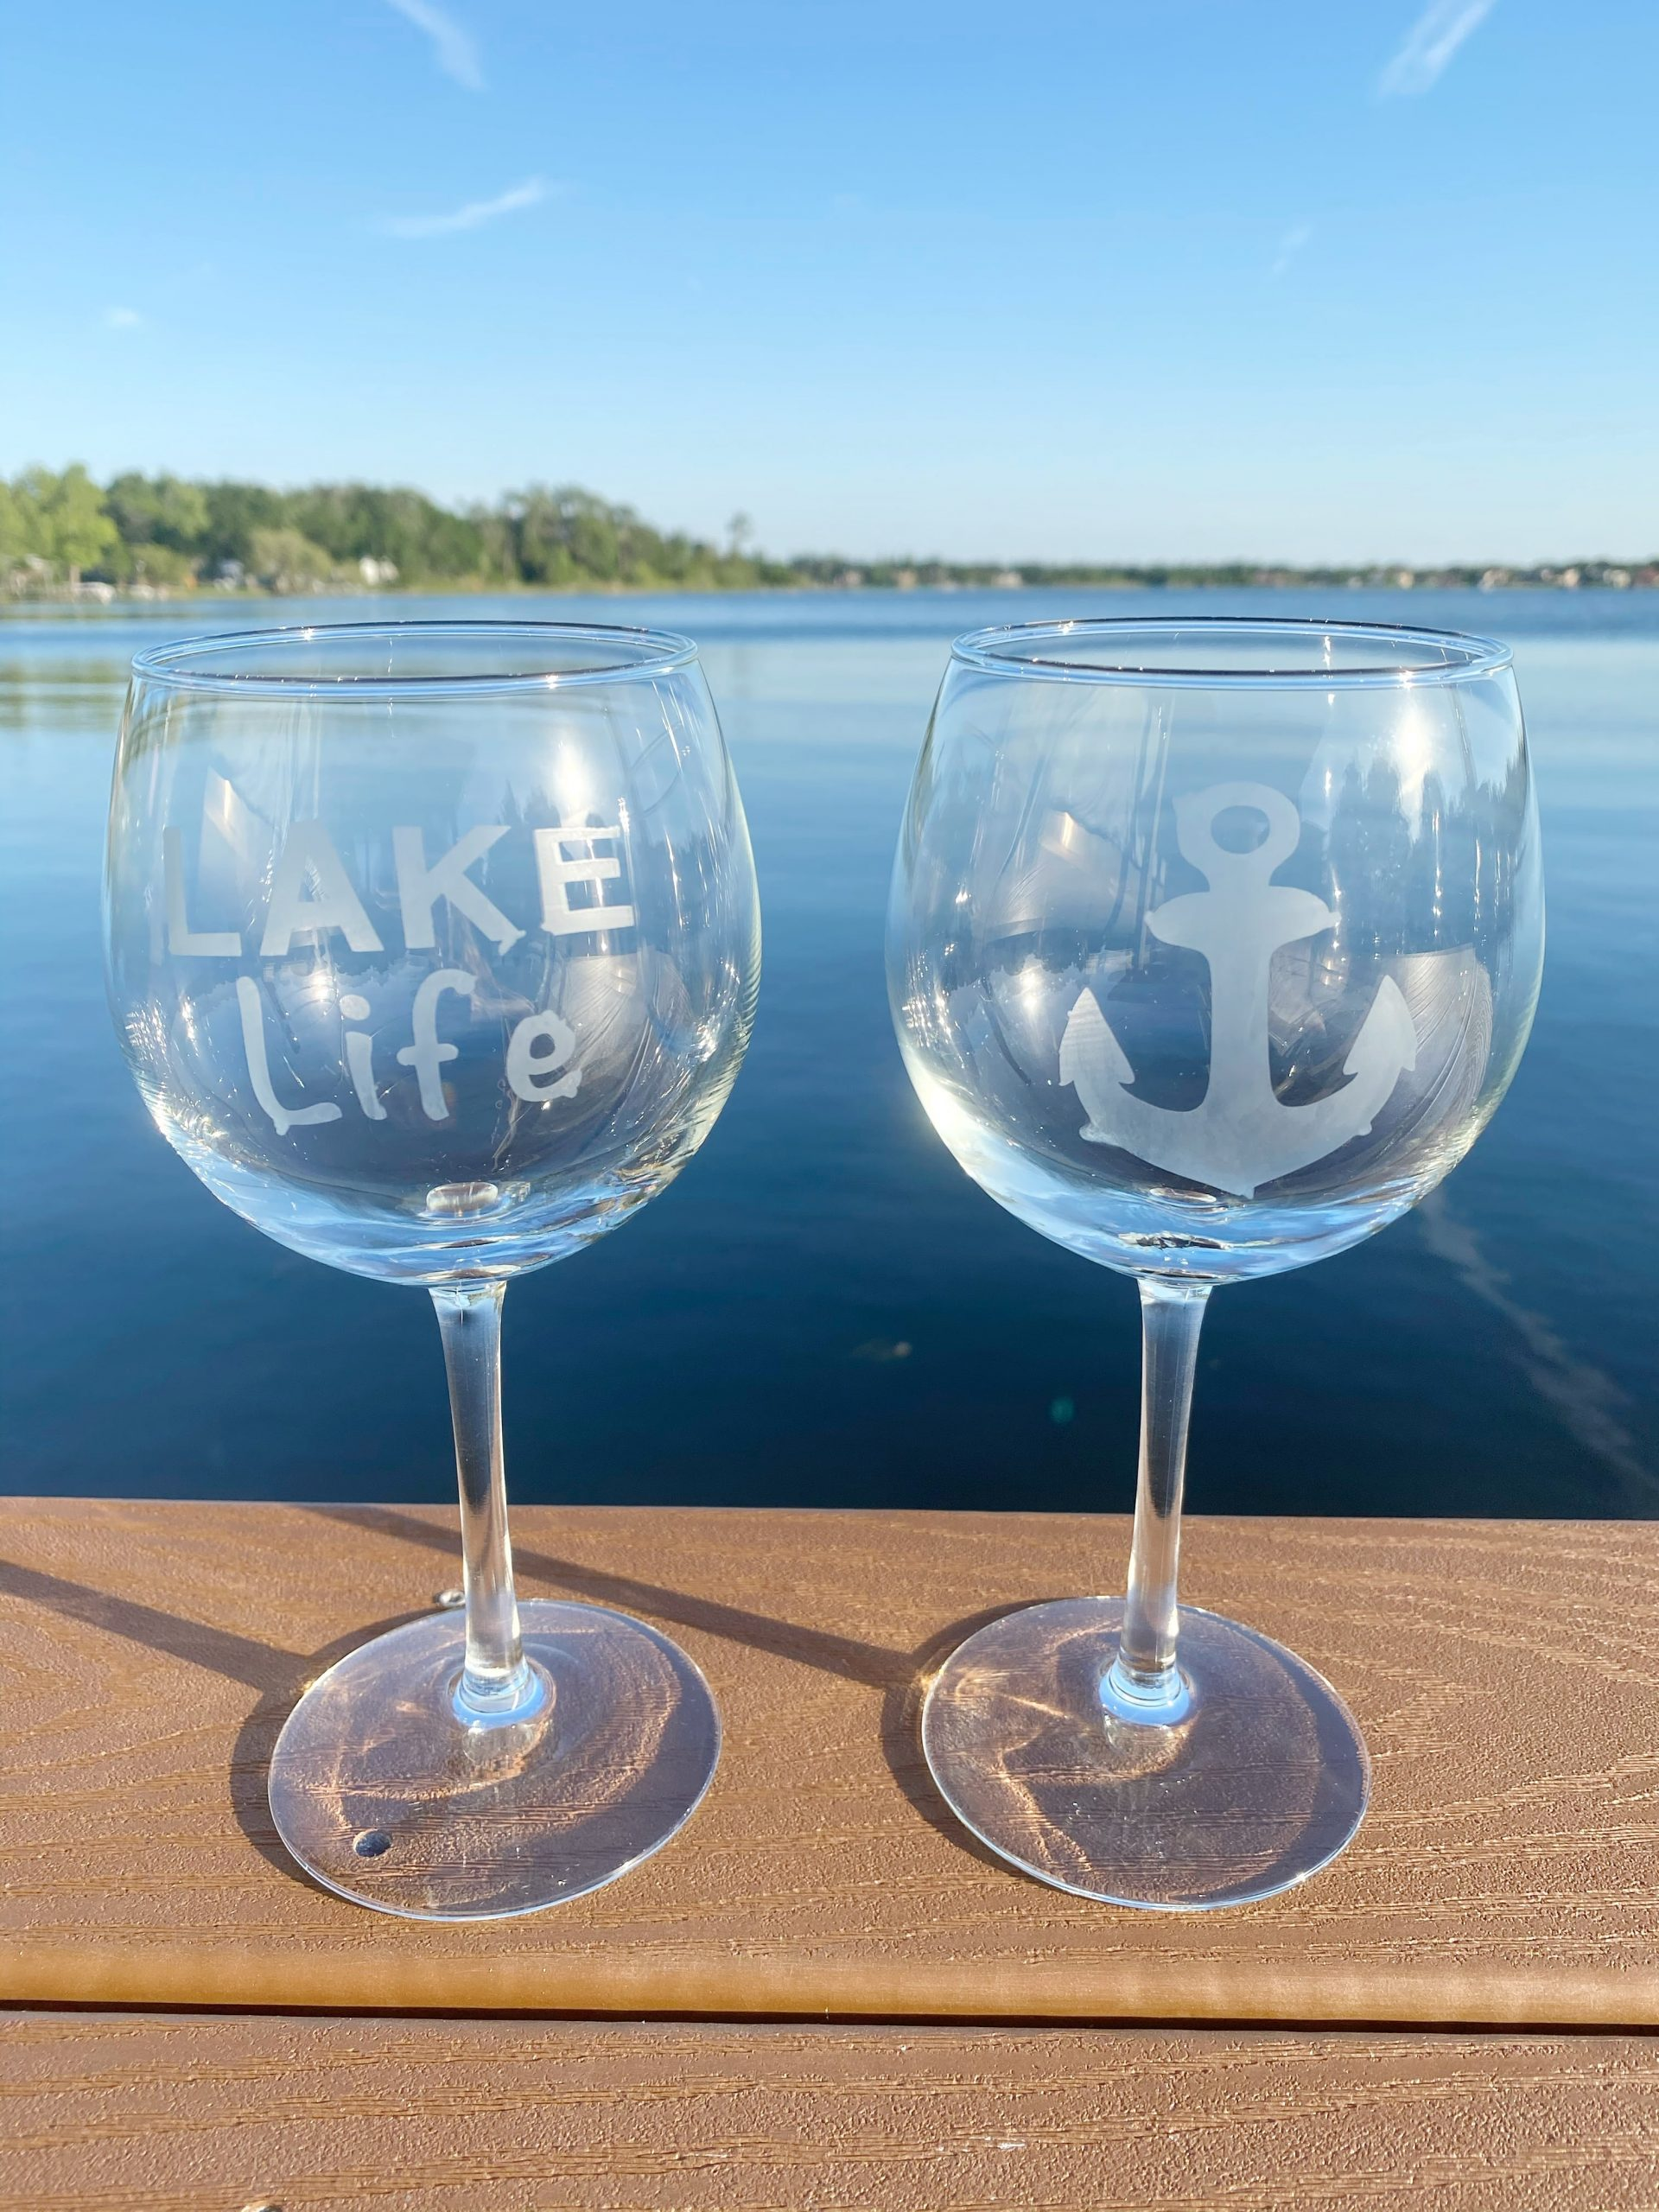 Easy Diy Etched Glass Gift Ideas Lake Life State Of Mind